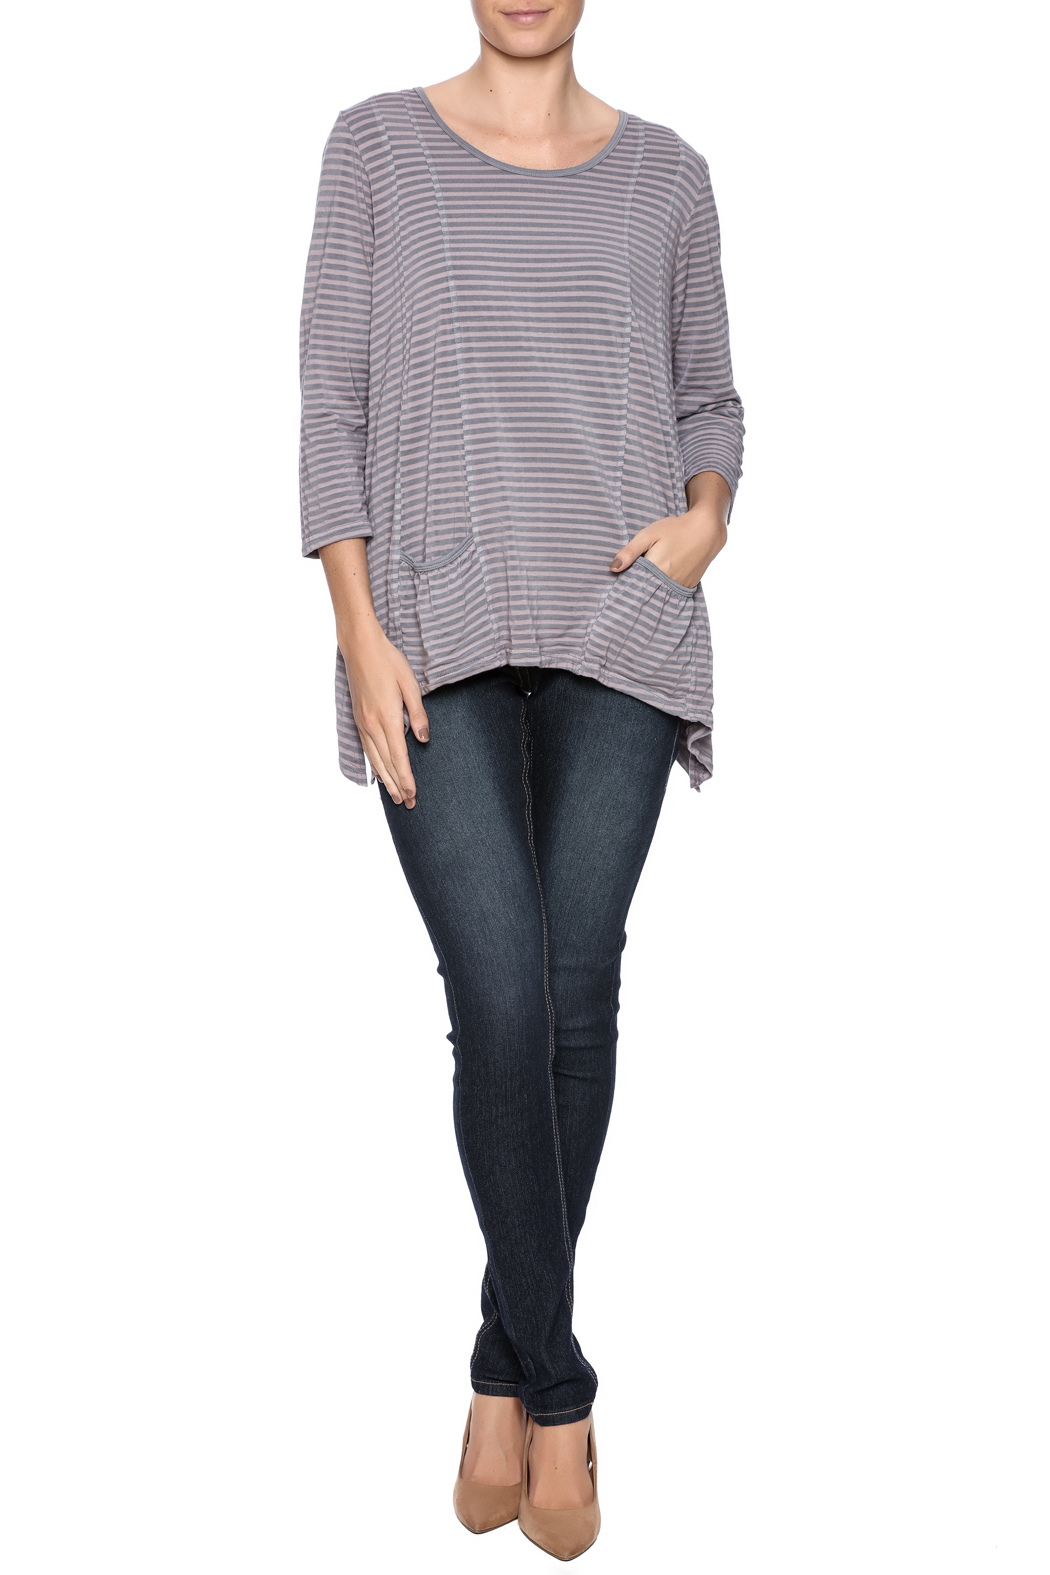 hartstrings tonal stripe top from cambria by new moon